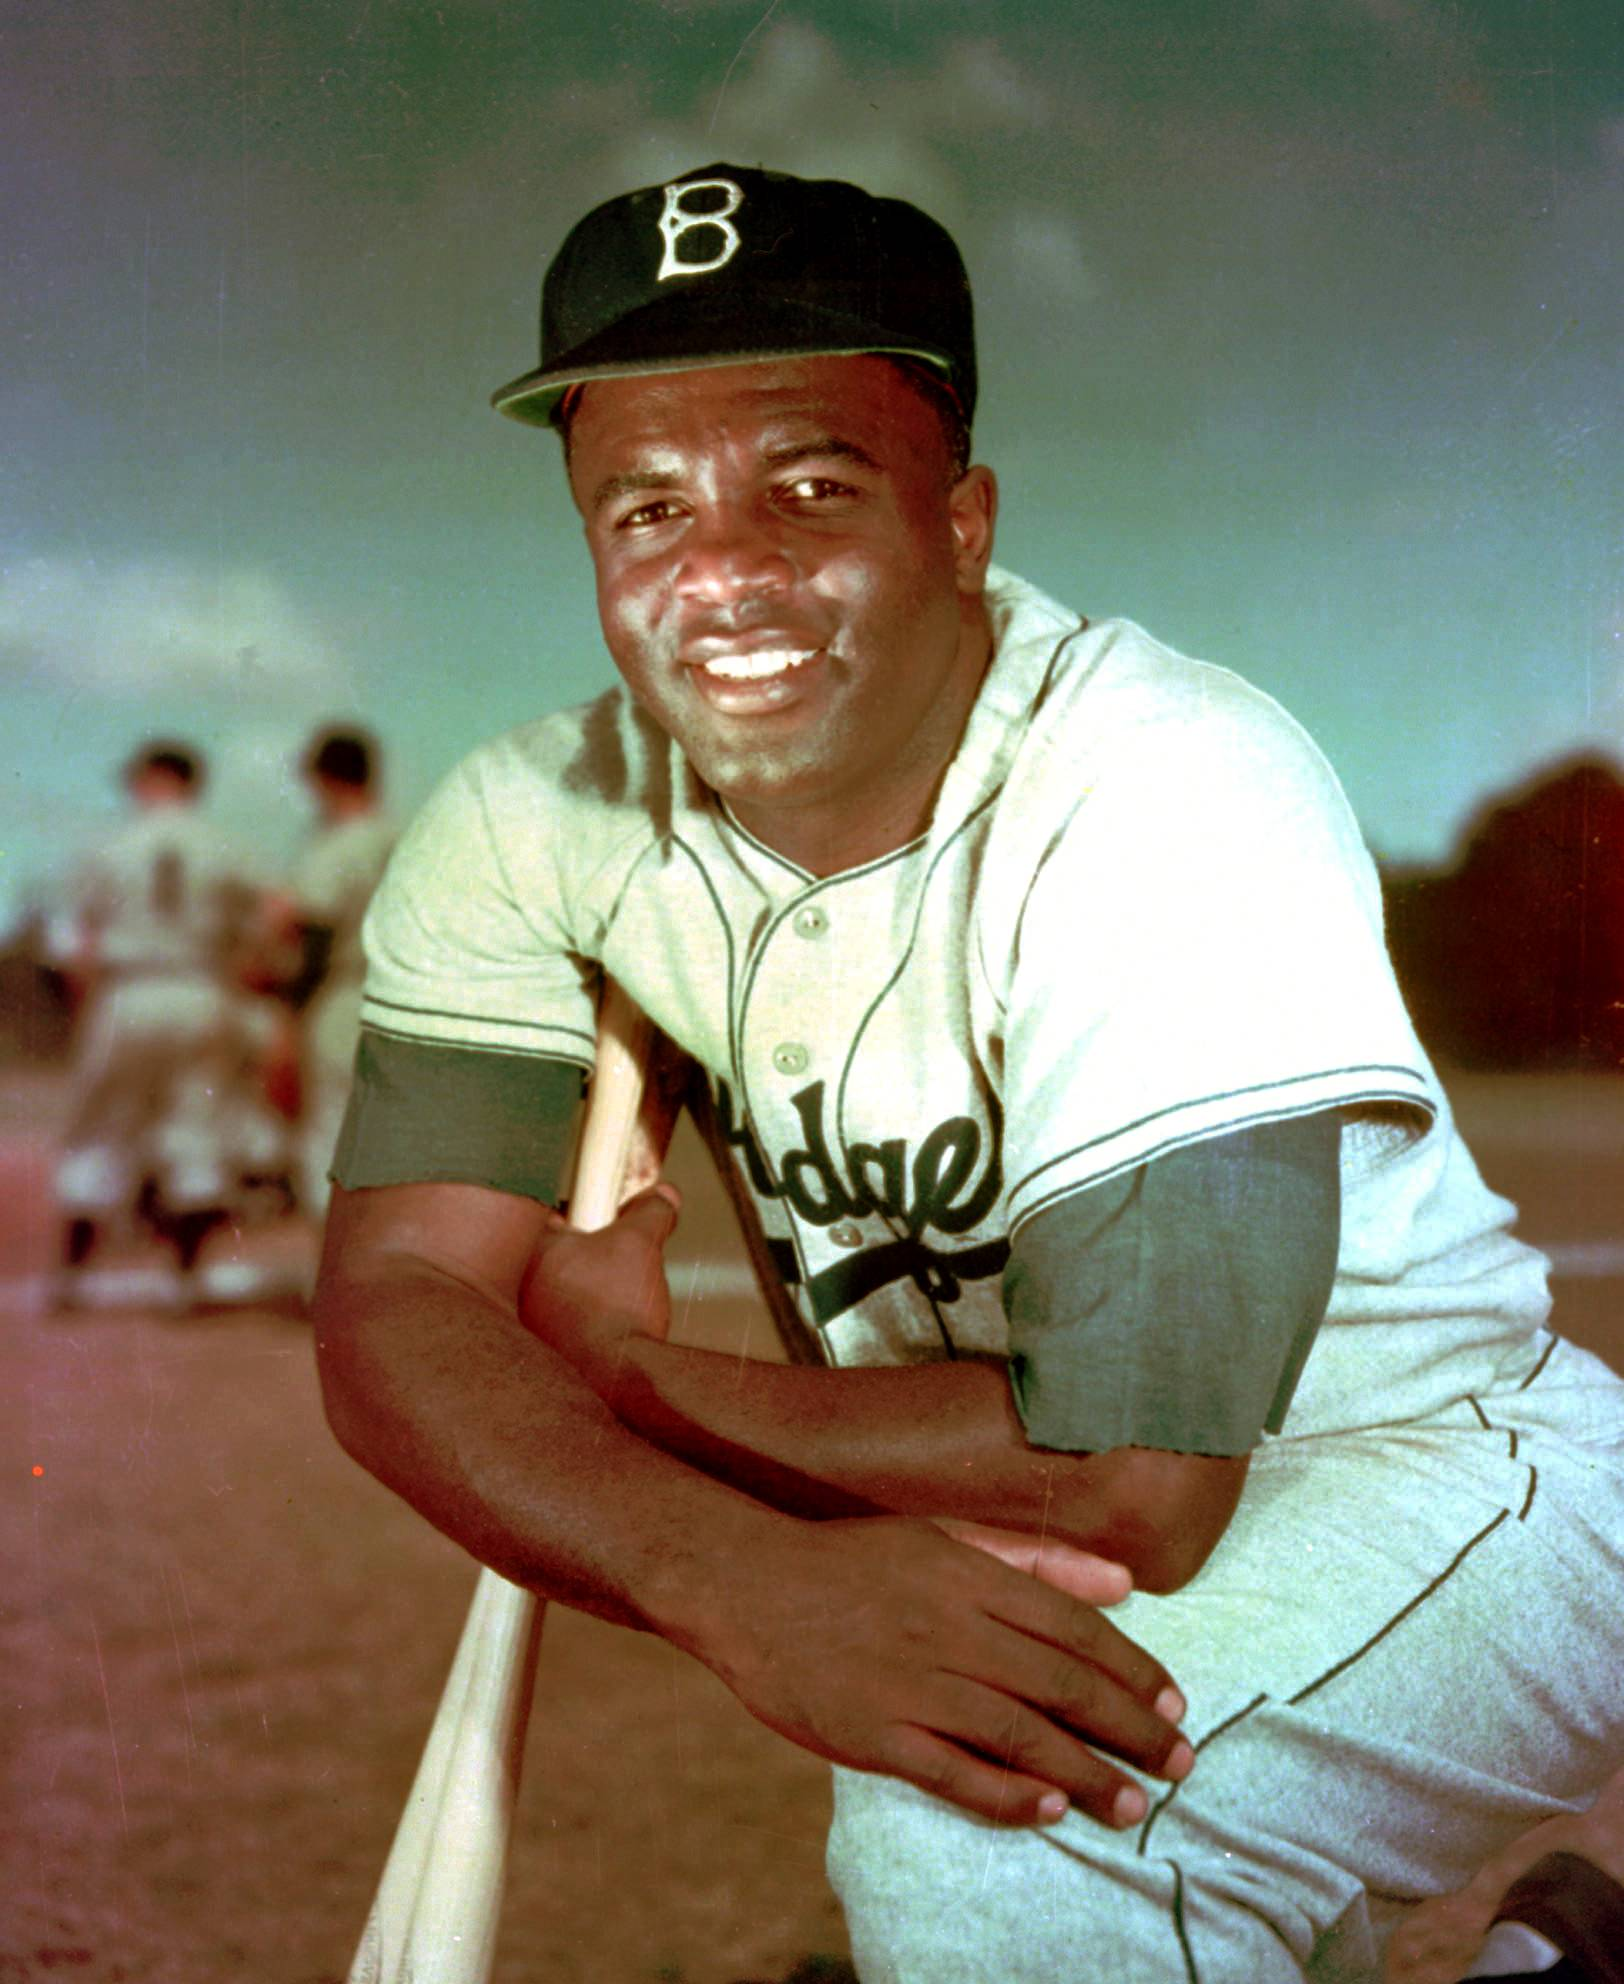 The Brooklyn Dodgers' Jackie Robinson poses in this 1952 file photo. It was Jackie Robinson Day on Tuesday in the major leagues, the 67th anniversary marking the end of the game's racial barrier.